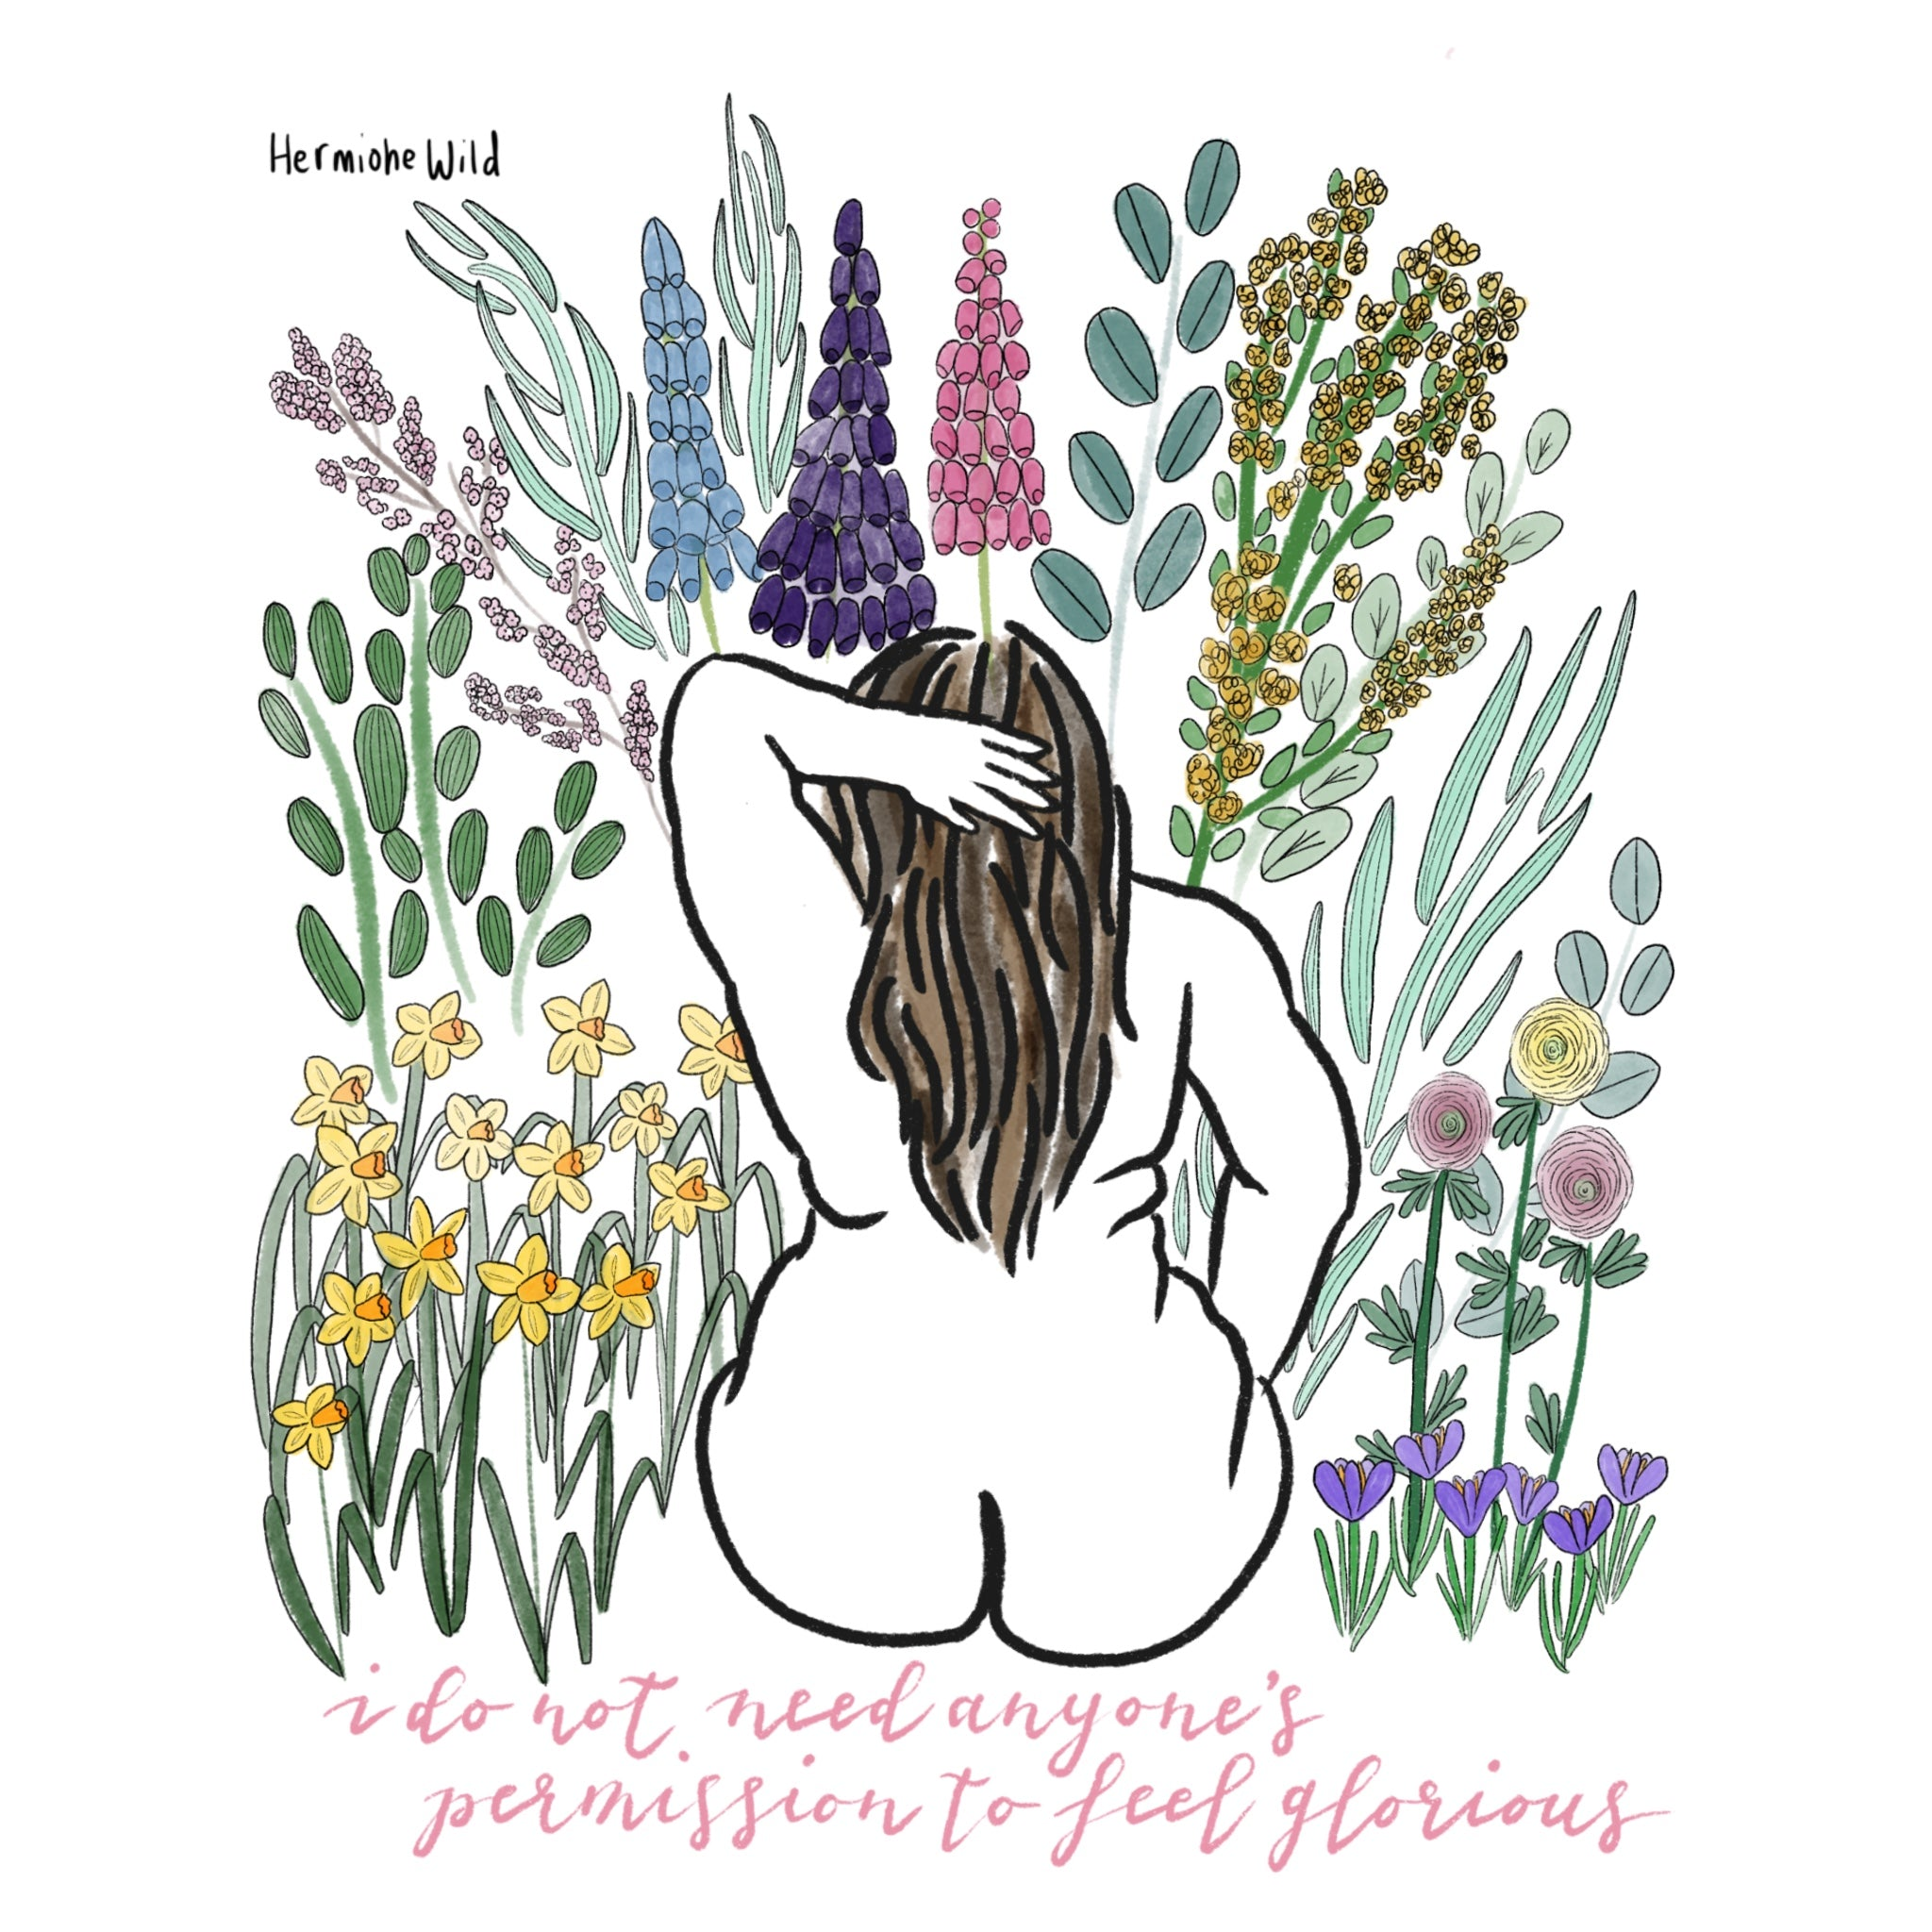 Nude woman surrounded by flowers, quote reads 'I do not need anyone's permission to feel glorious'